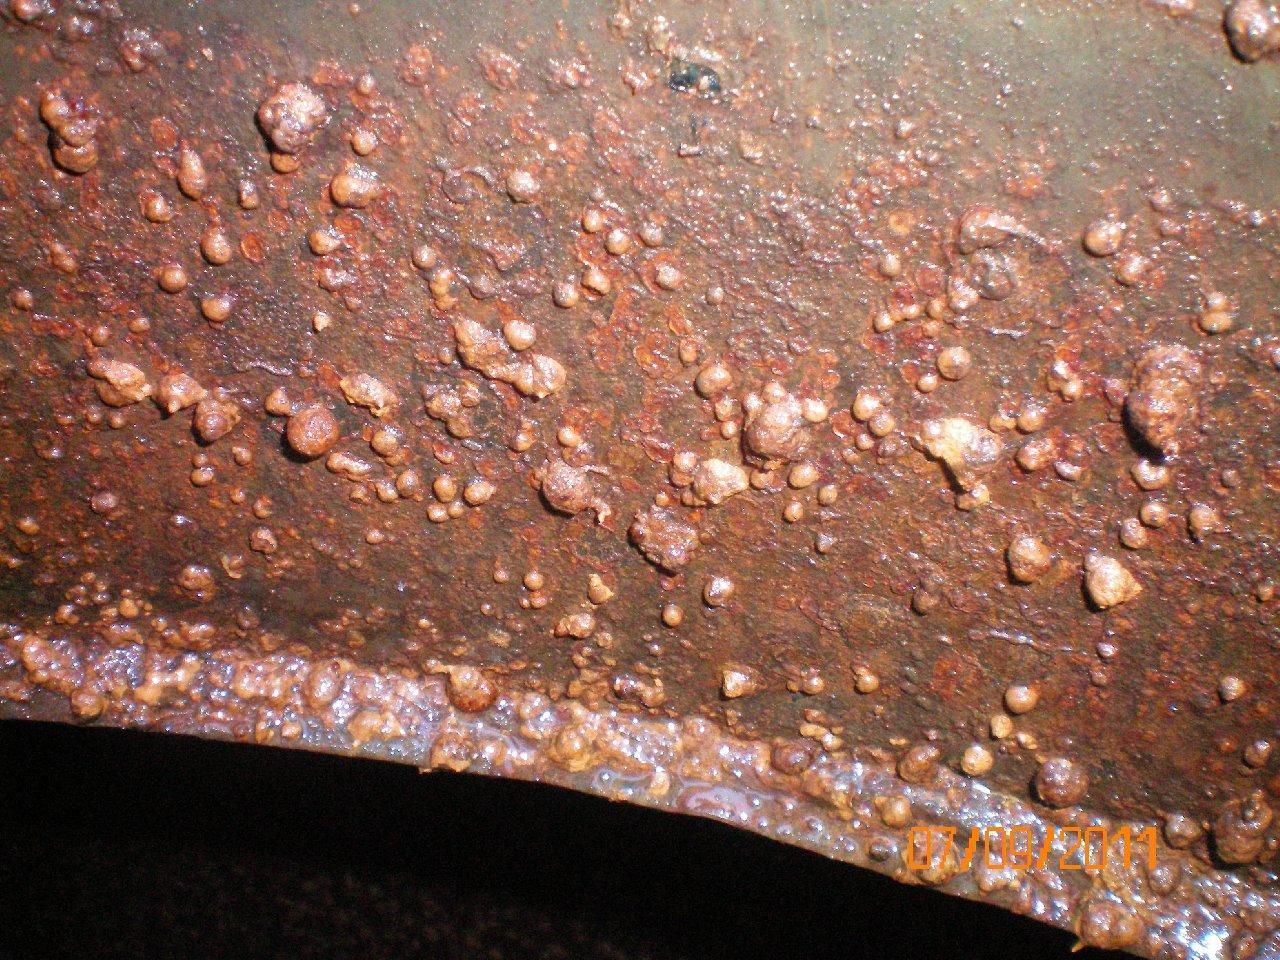 Corrosion craters.